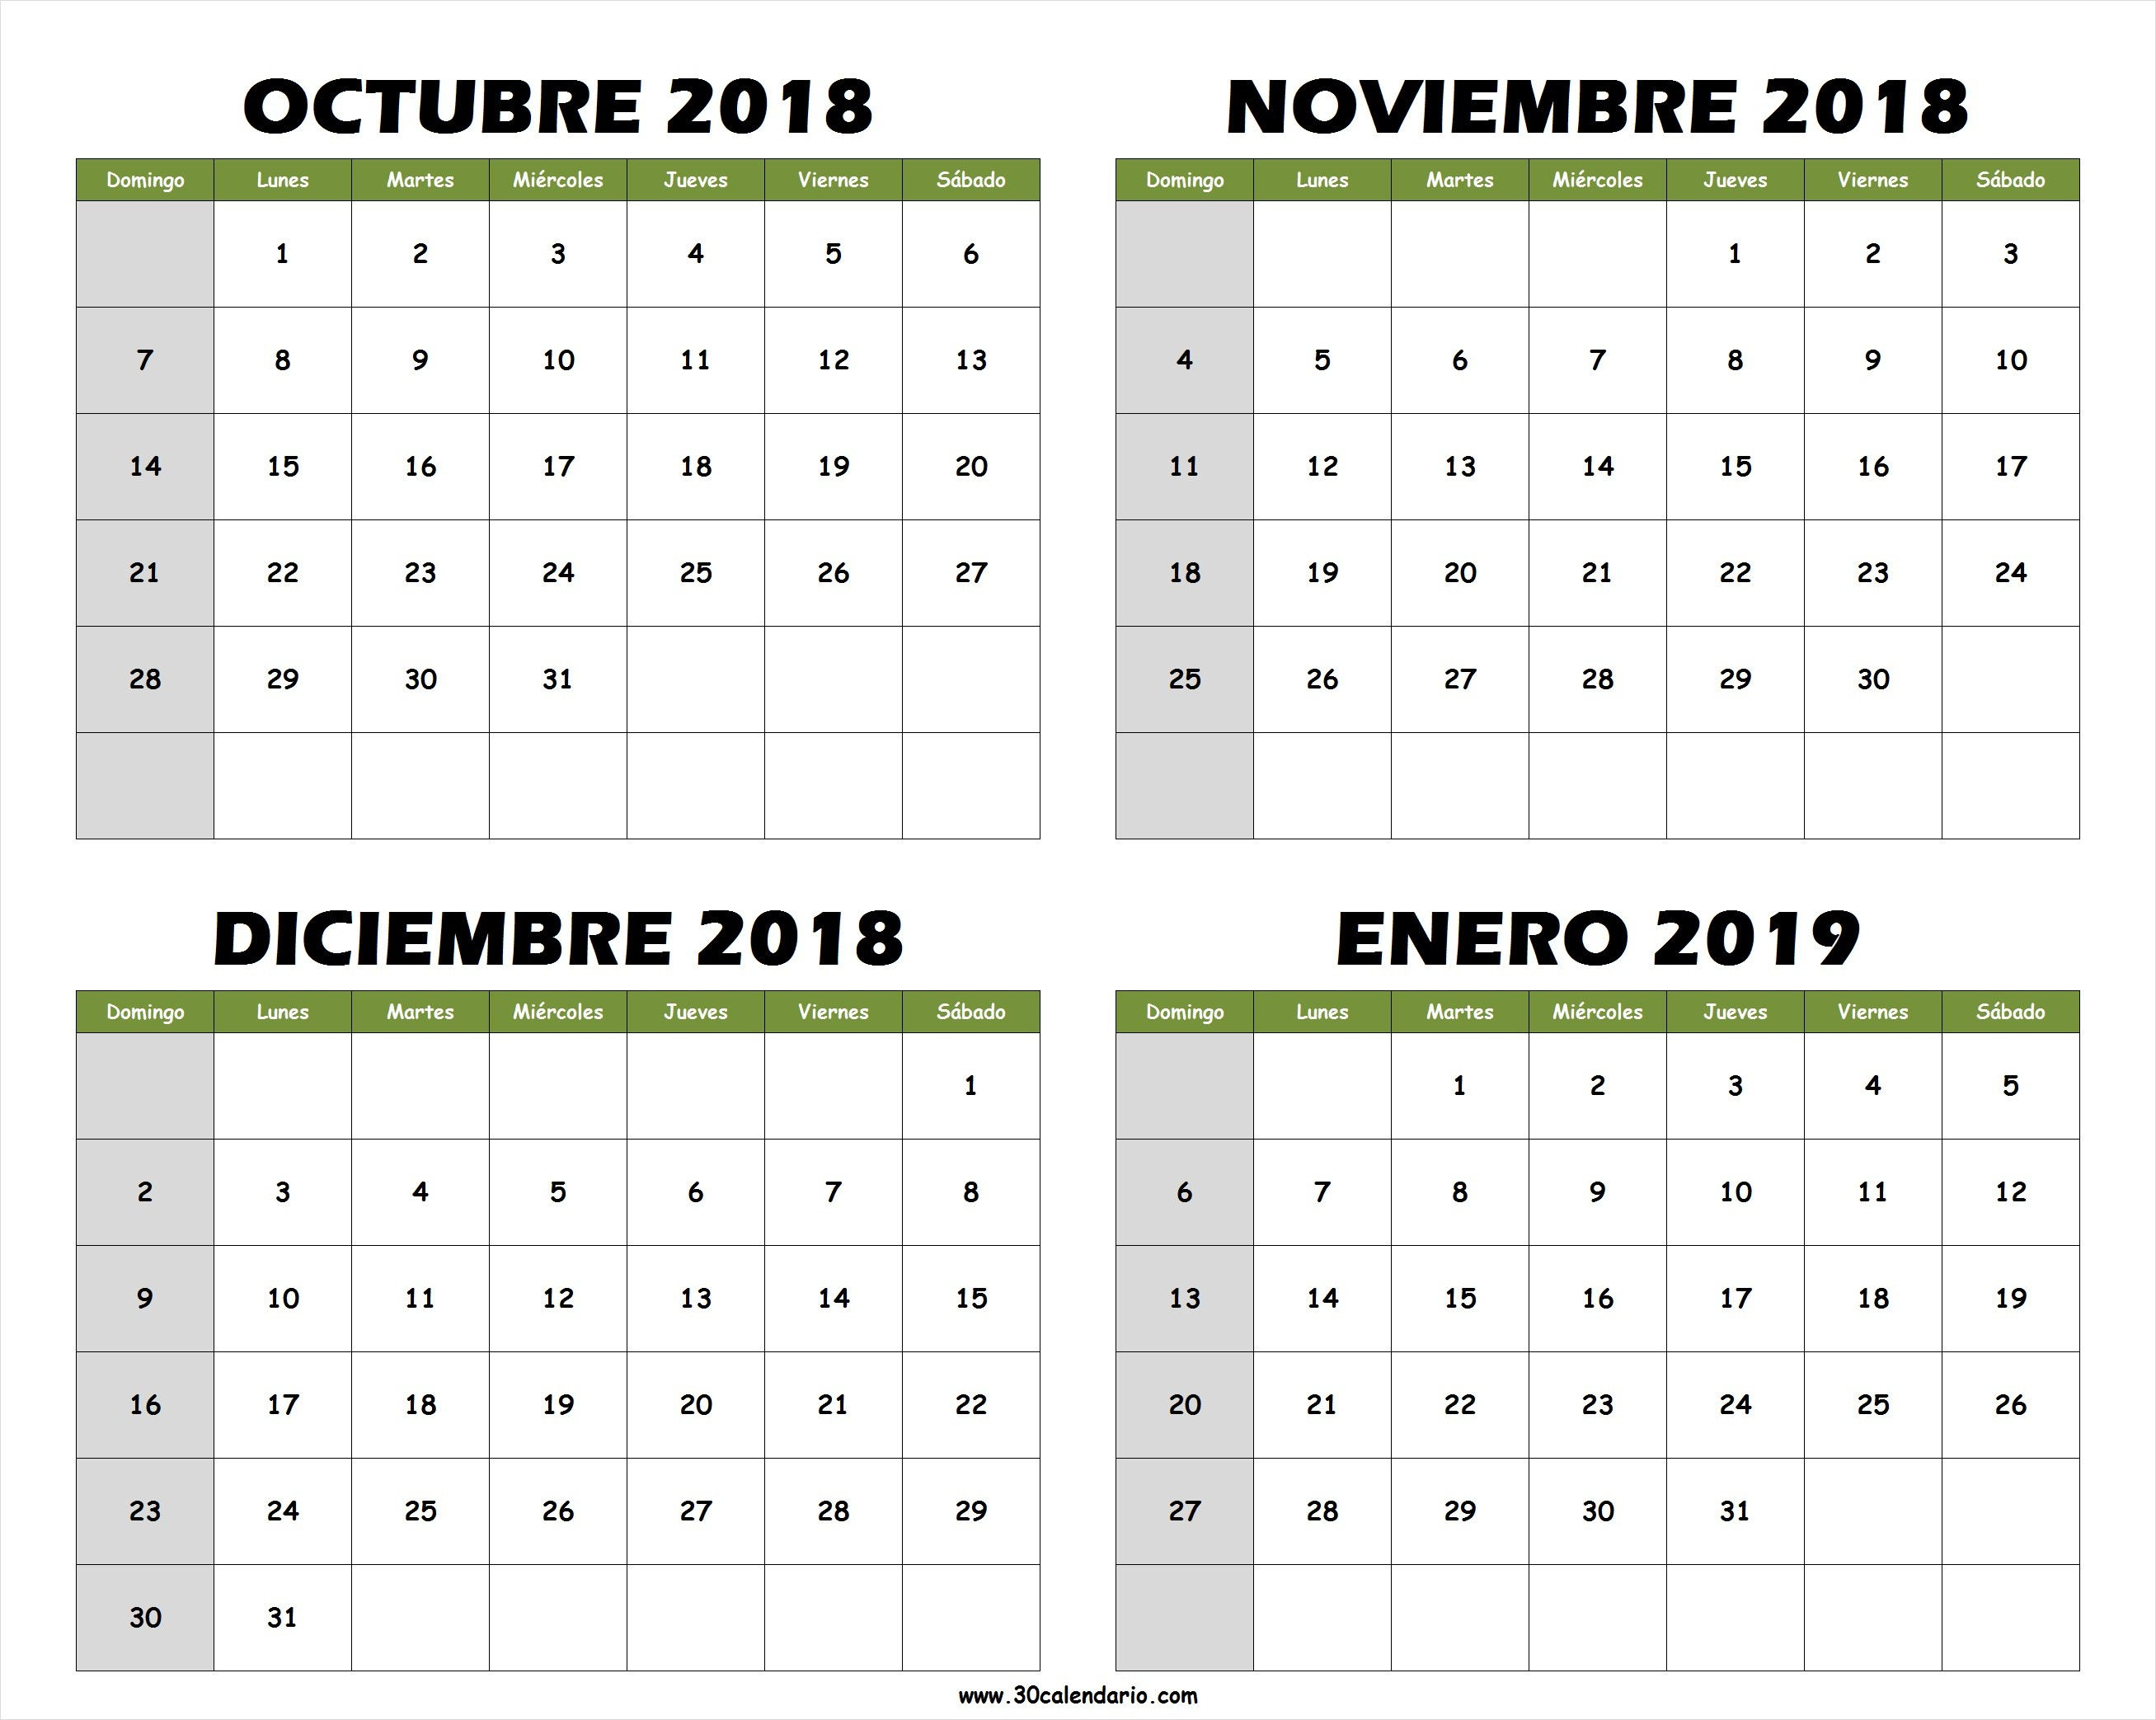 Calendario 2019 Argentina Editable Más Recientes Calendario Octubre 2018 Colombia T Of Calendario 2019 Argentina Editable Más Actual Nautical Free Free Nautical Charts & Publications No Image Version